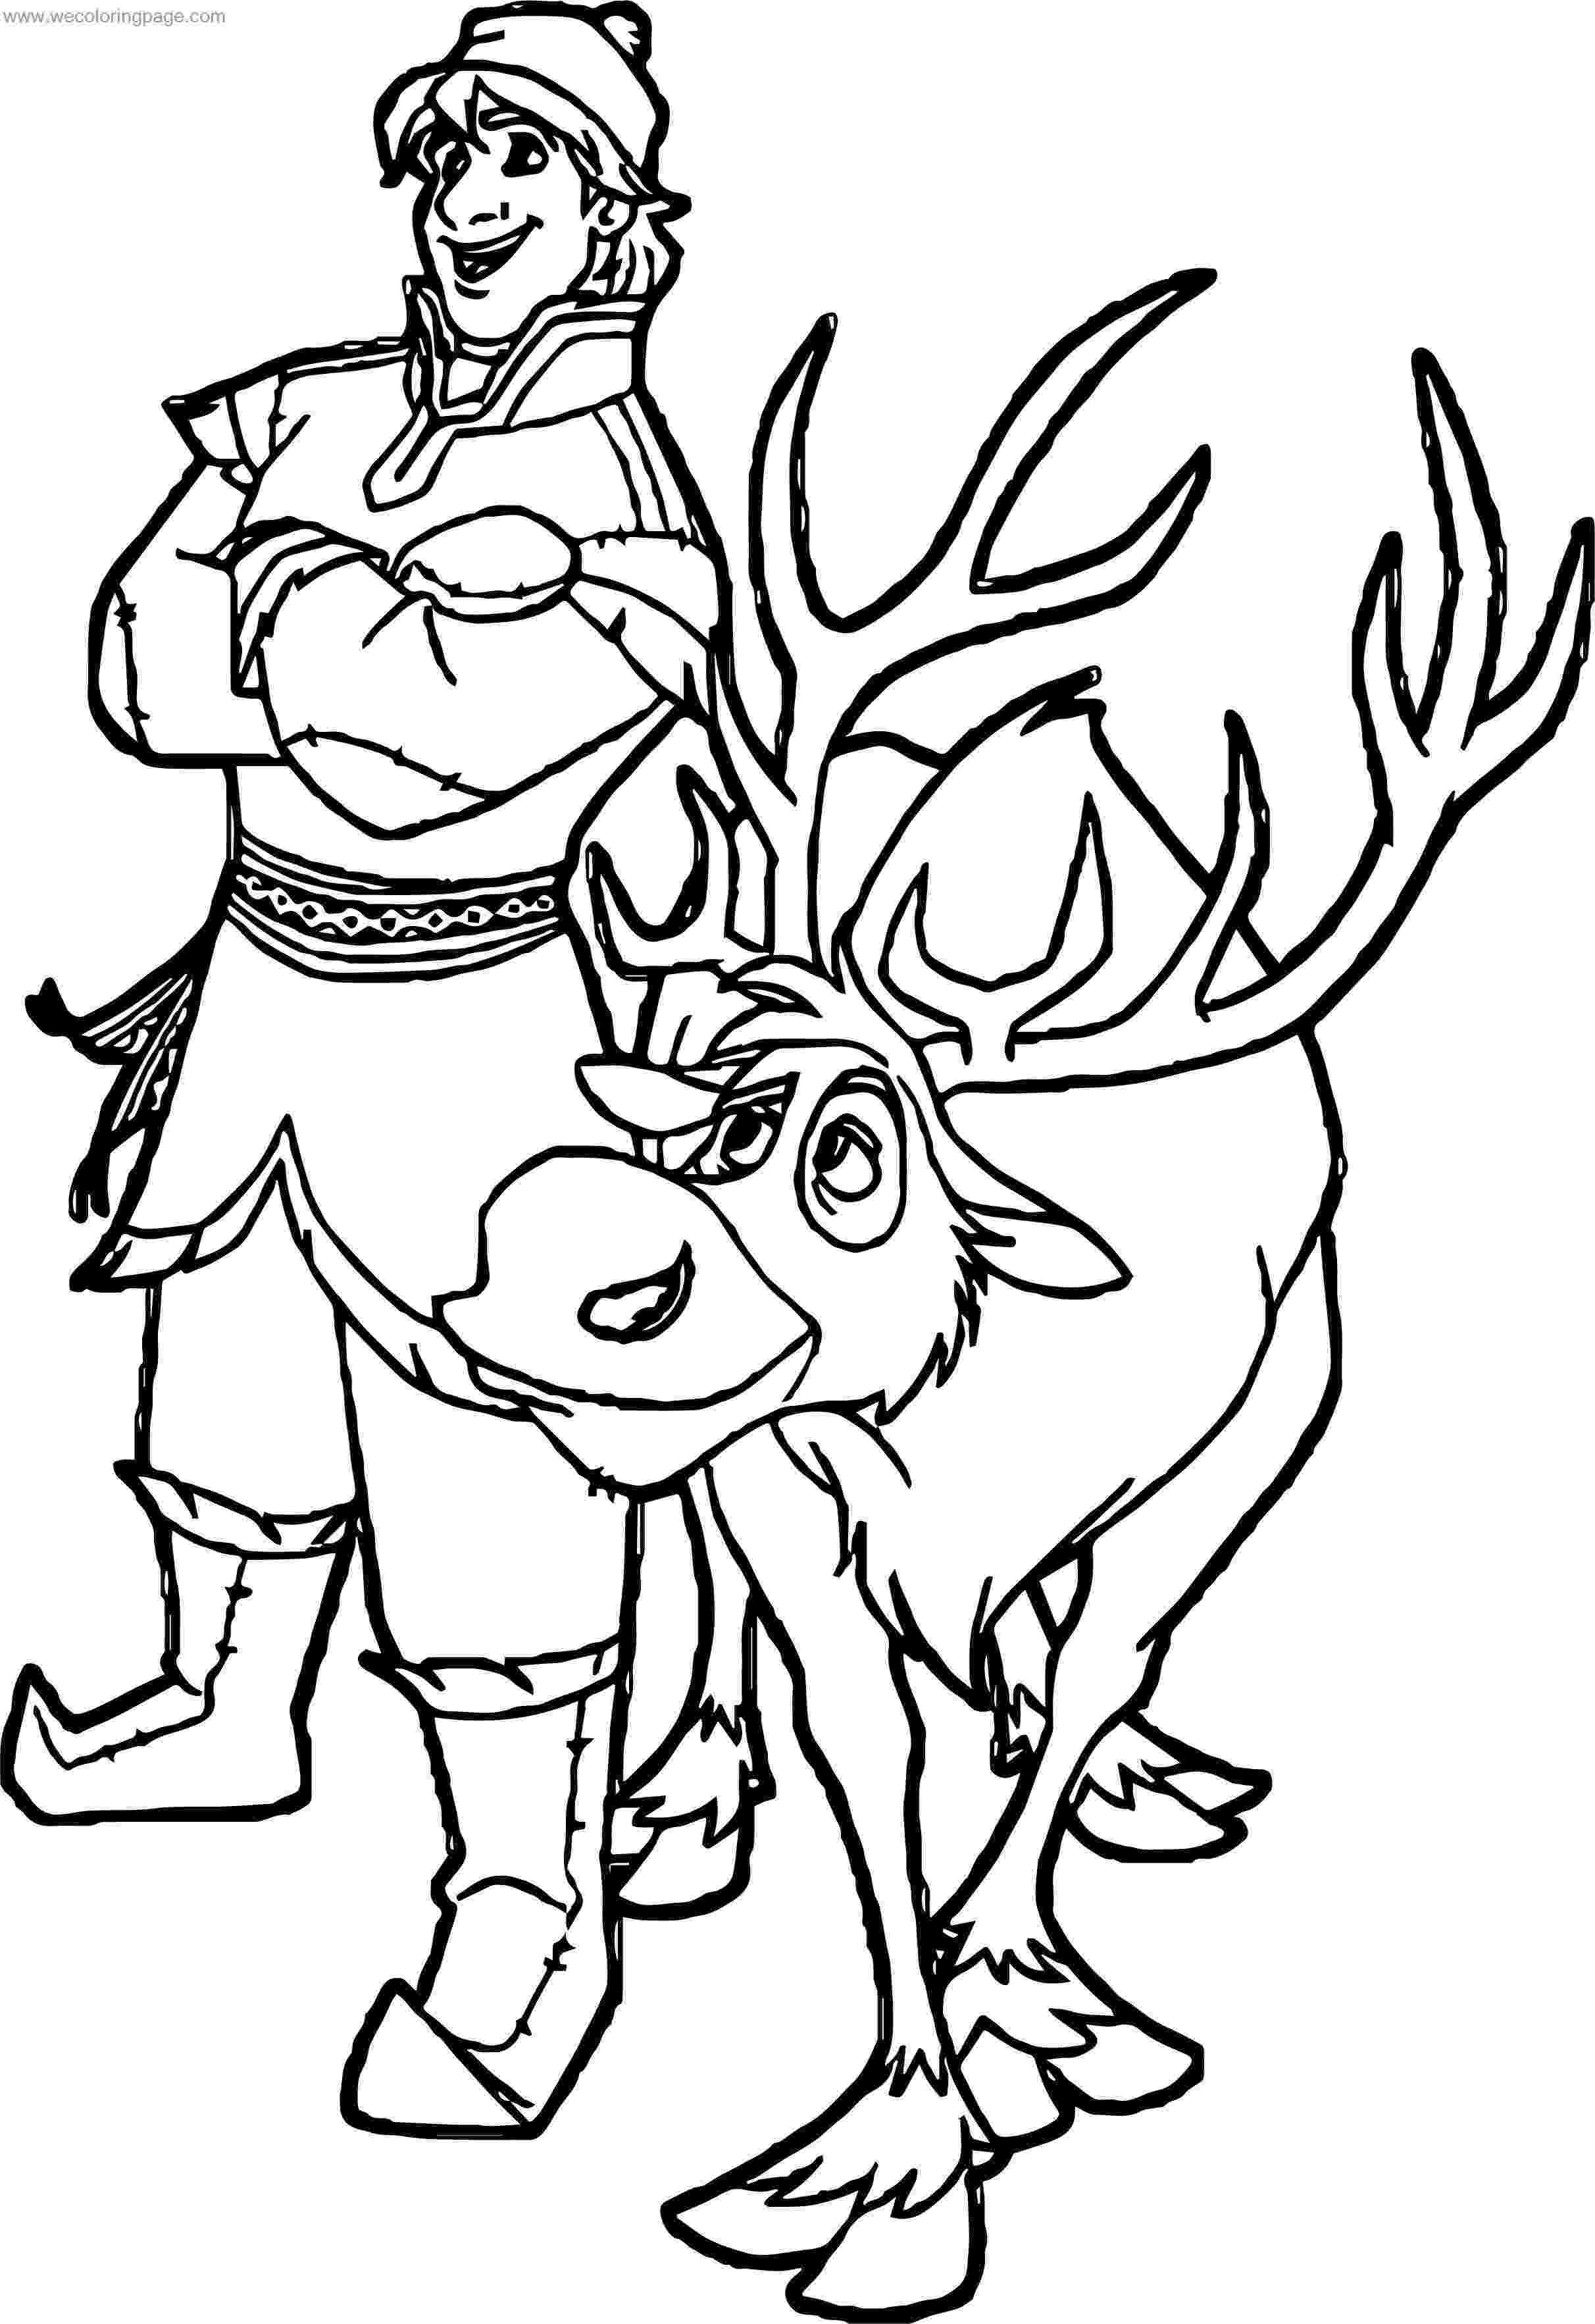 sven coloring pages reindeer sven from frozen coloring page book sheet pages coloring sven